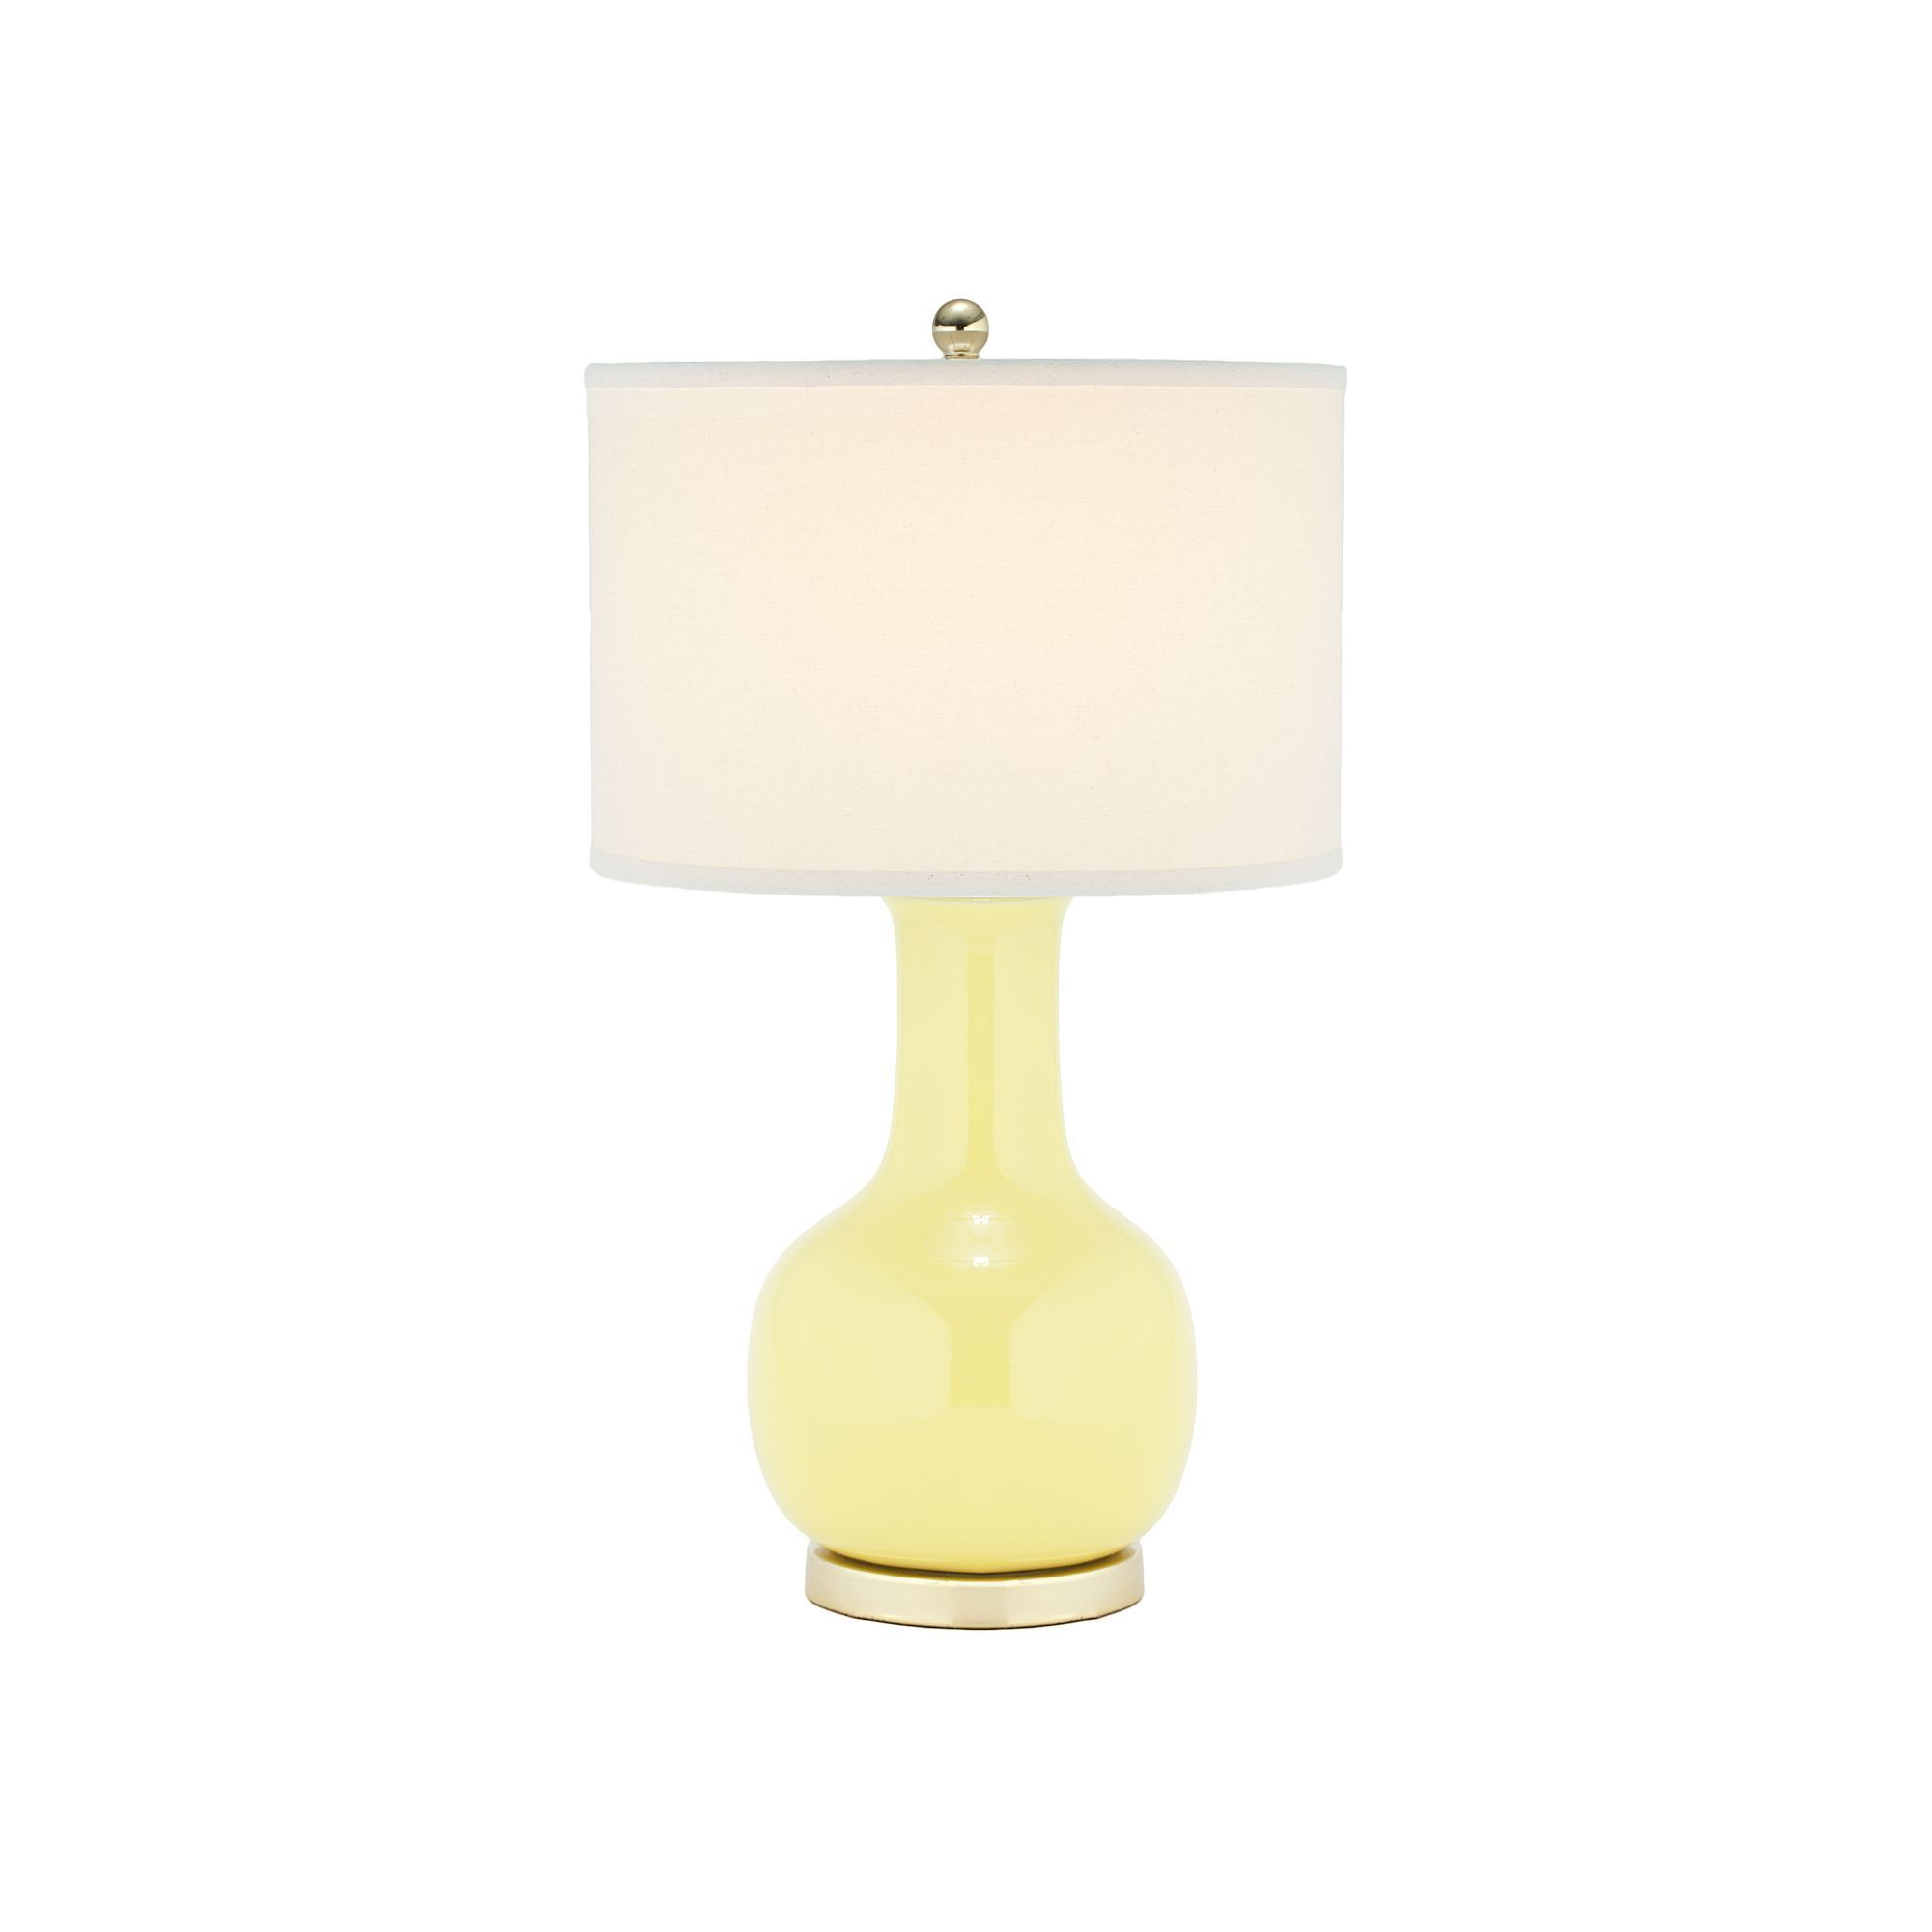 Kohls Table Lamps Mesmerizing Safavieh Paris Table Lamp Blue  Tables Products And Table Lamps Inspiration Design